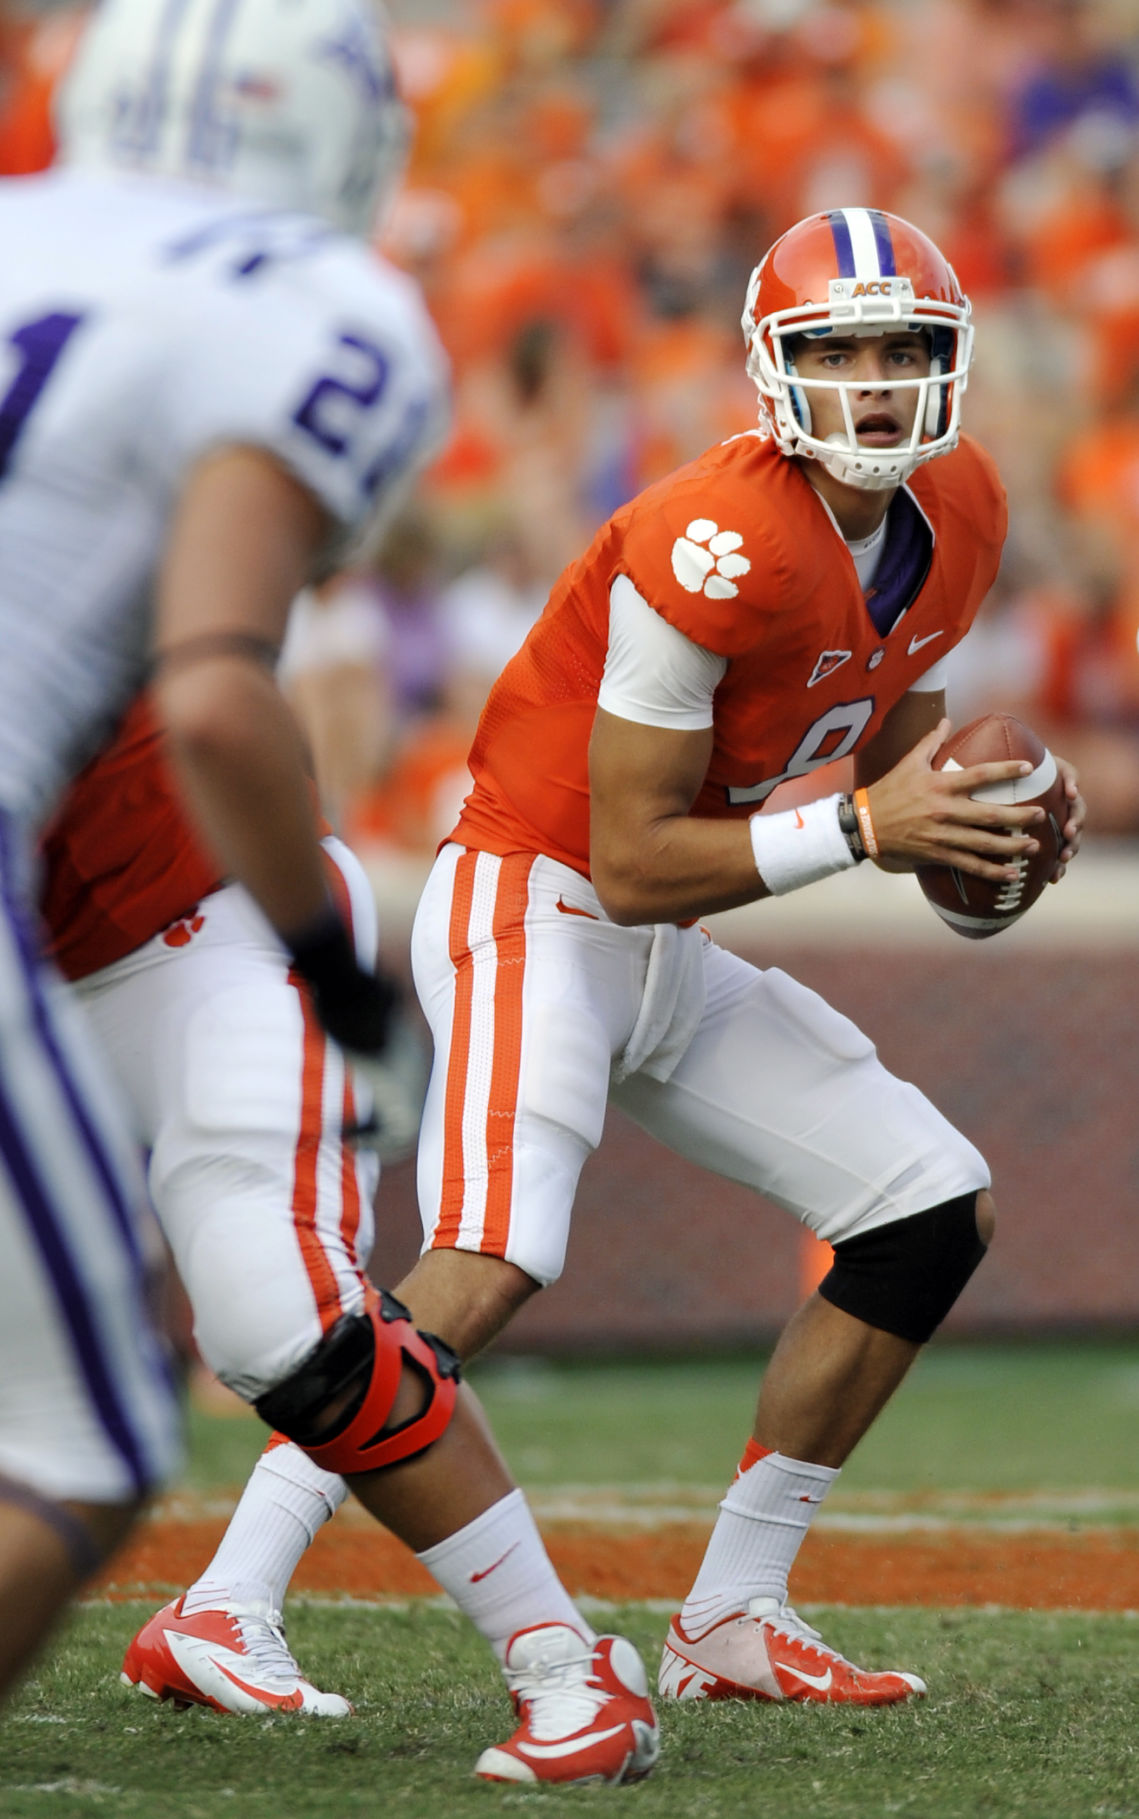 Clemson backups ready for action